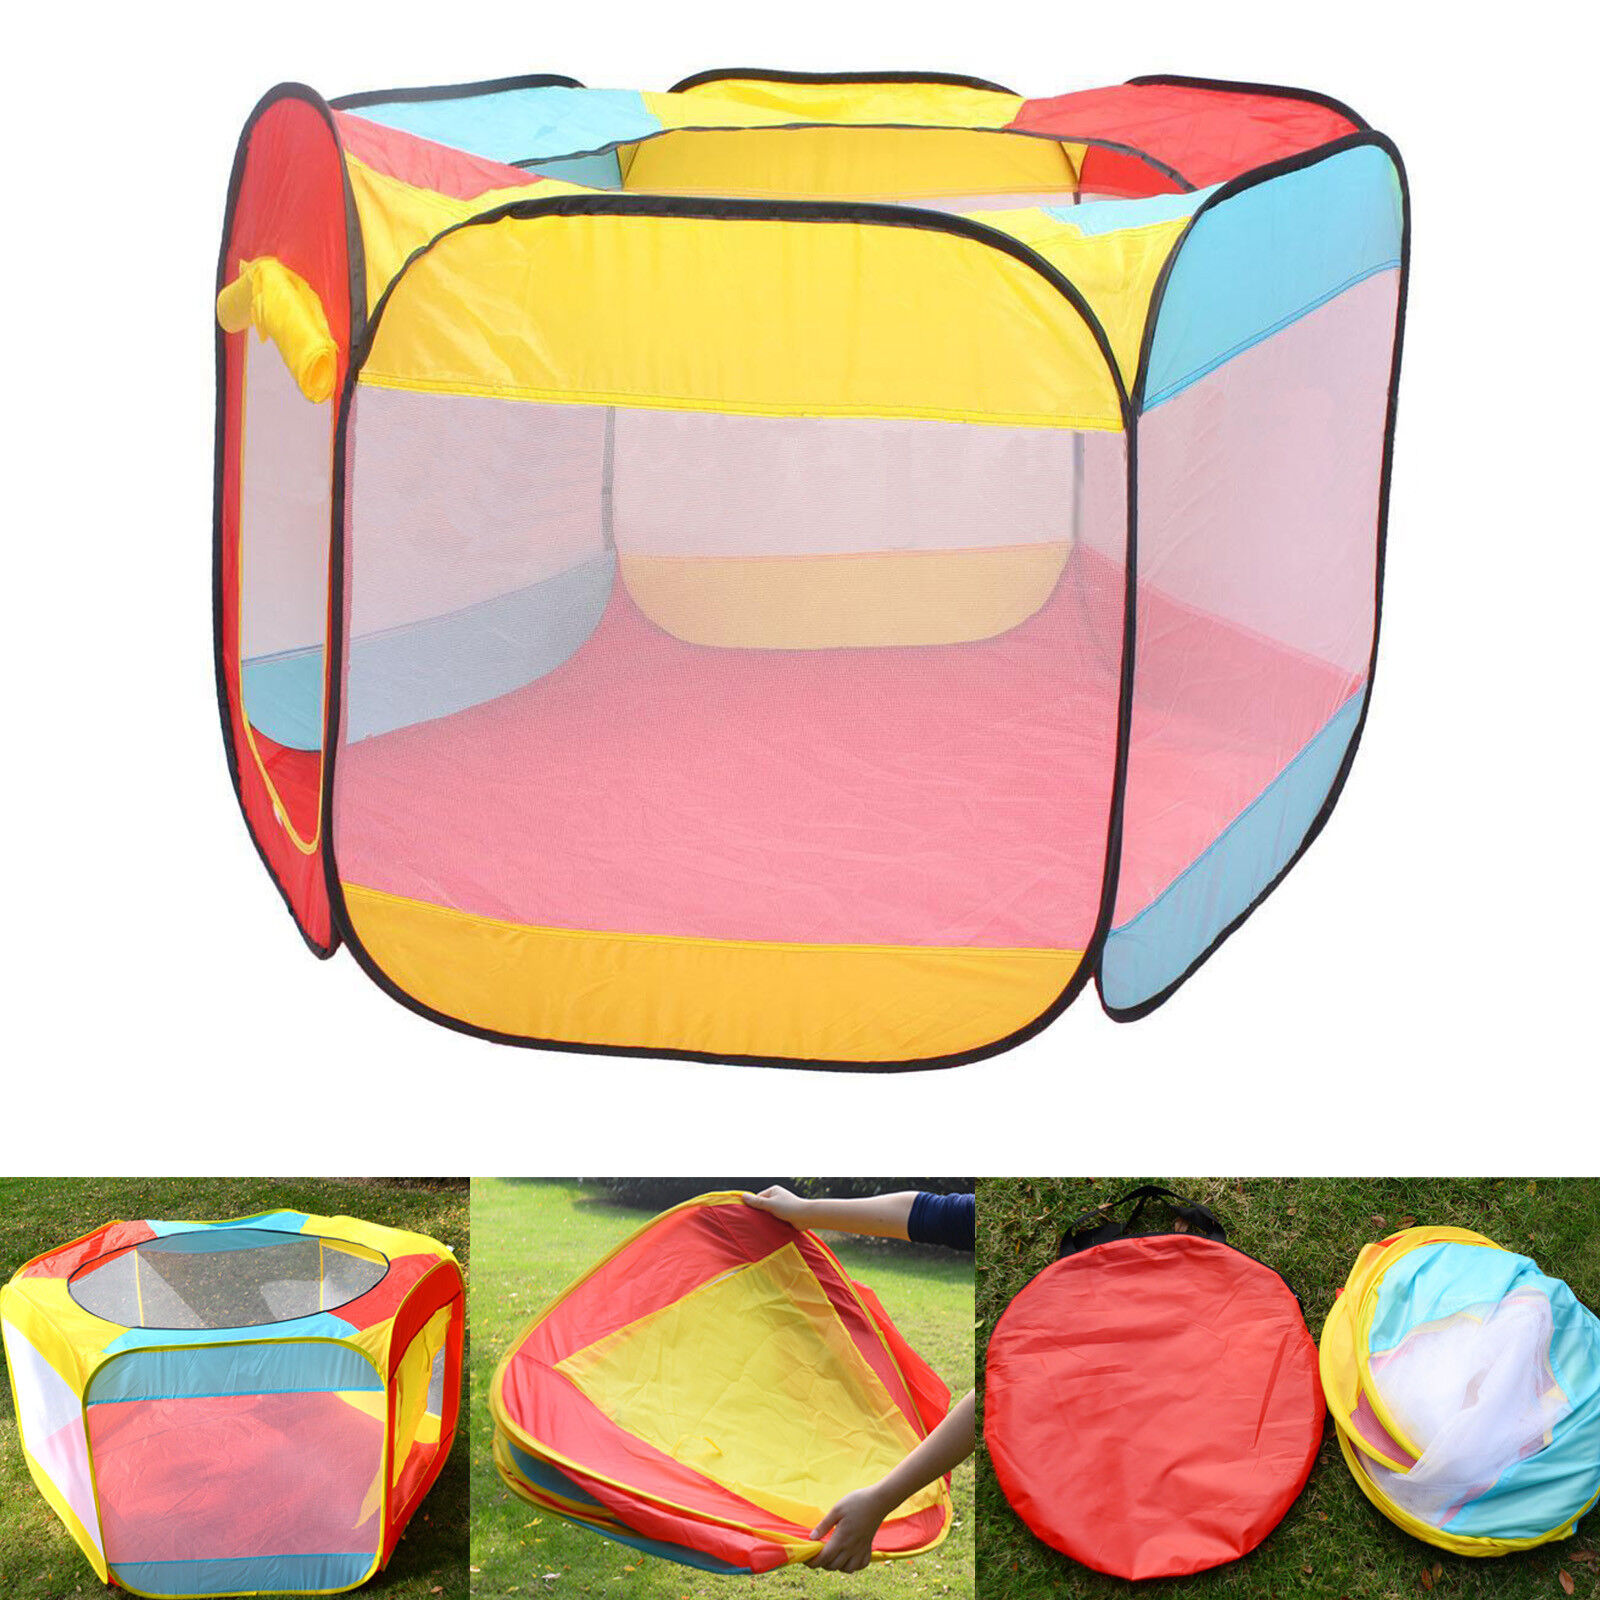 Folding Portable Playpen Baby Play Yard With Travel Bag Indoor Outdoor Safety - $17.95